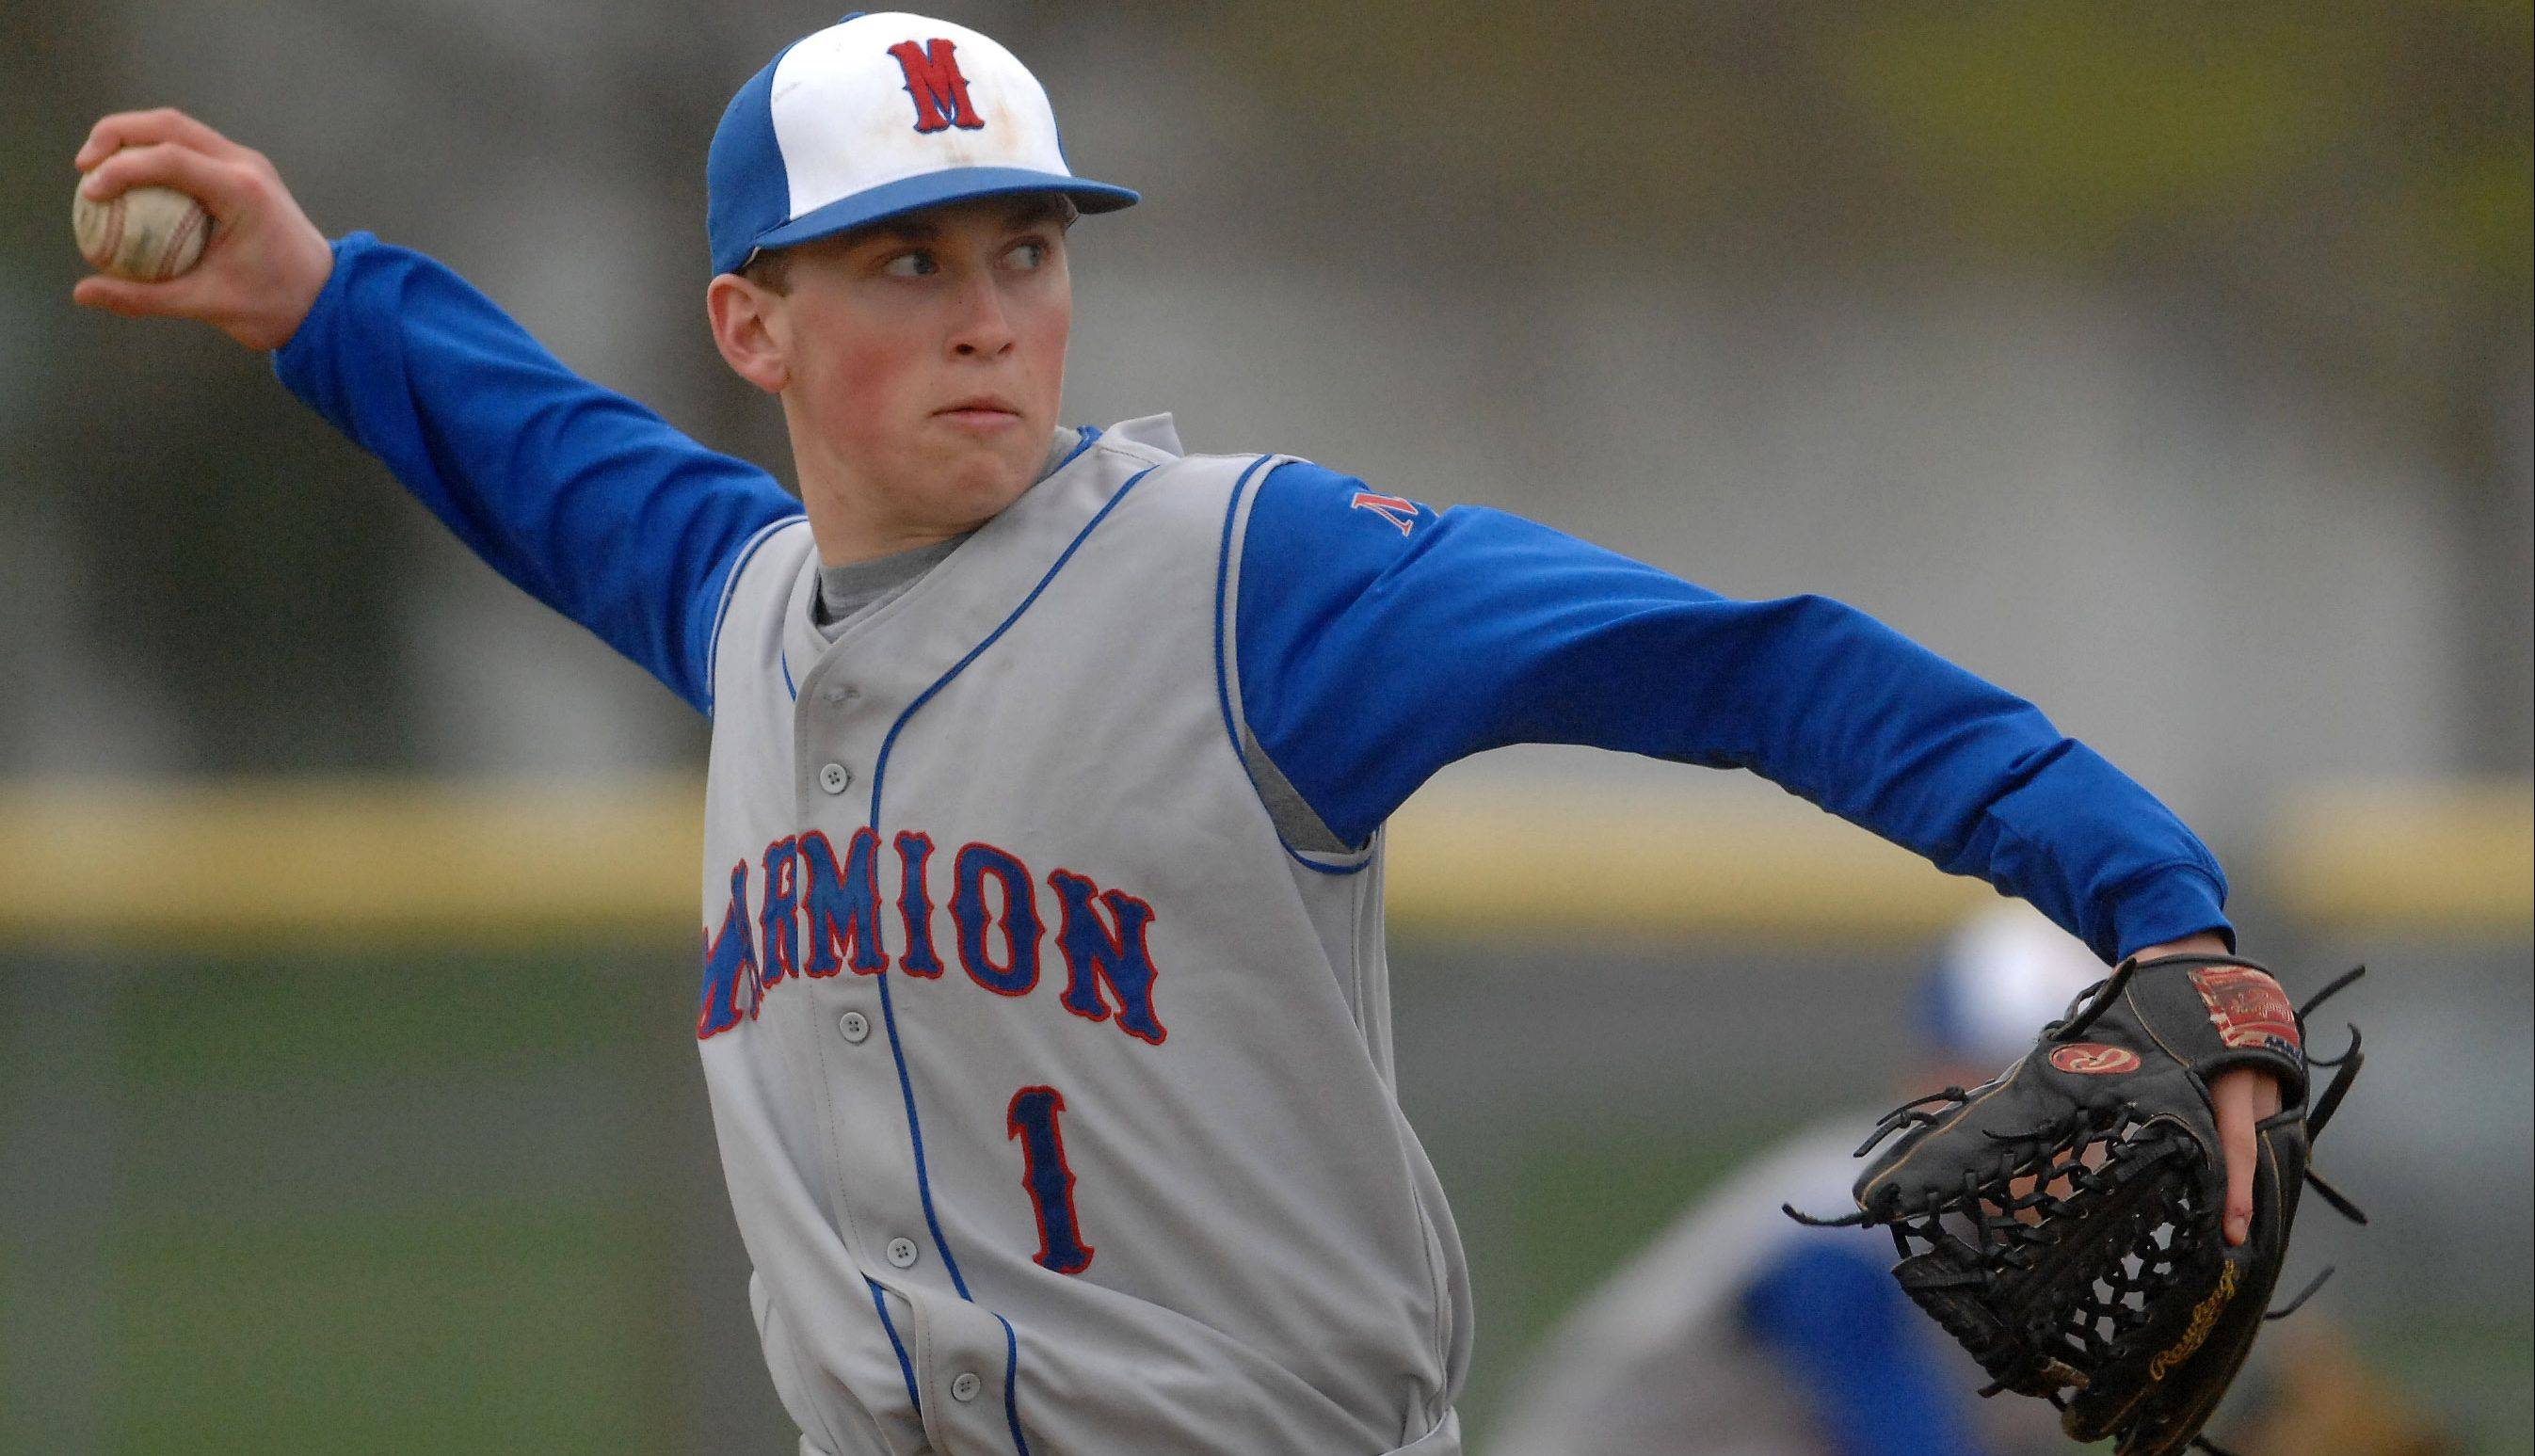 Connor Riley finished with a 6-3 record and 66 strikeouts last year for Marmion.